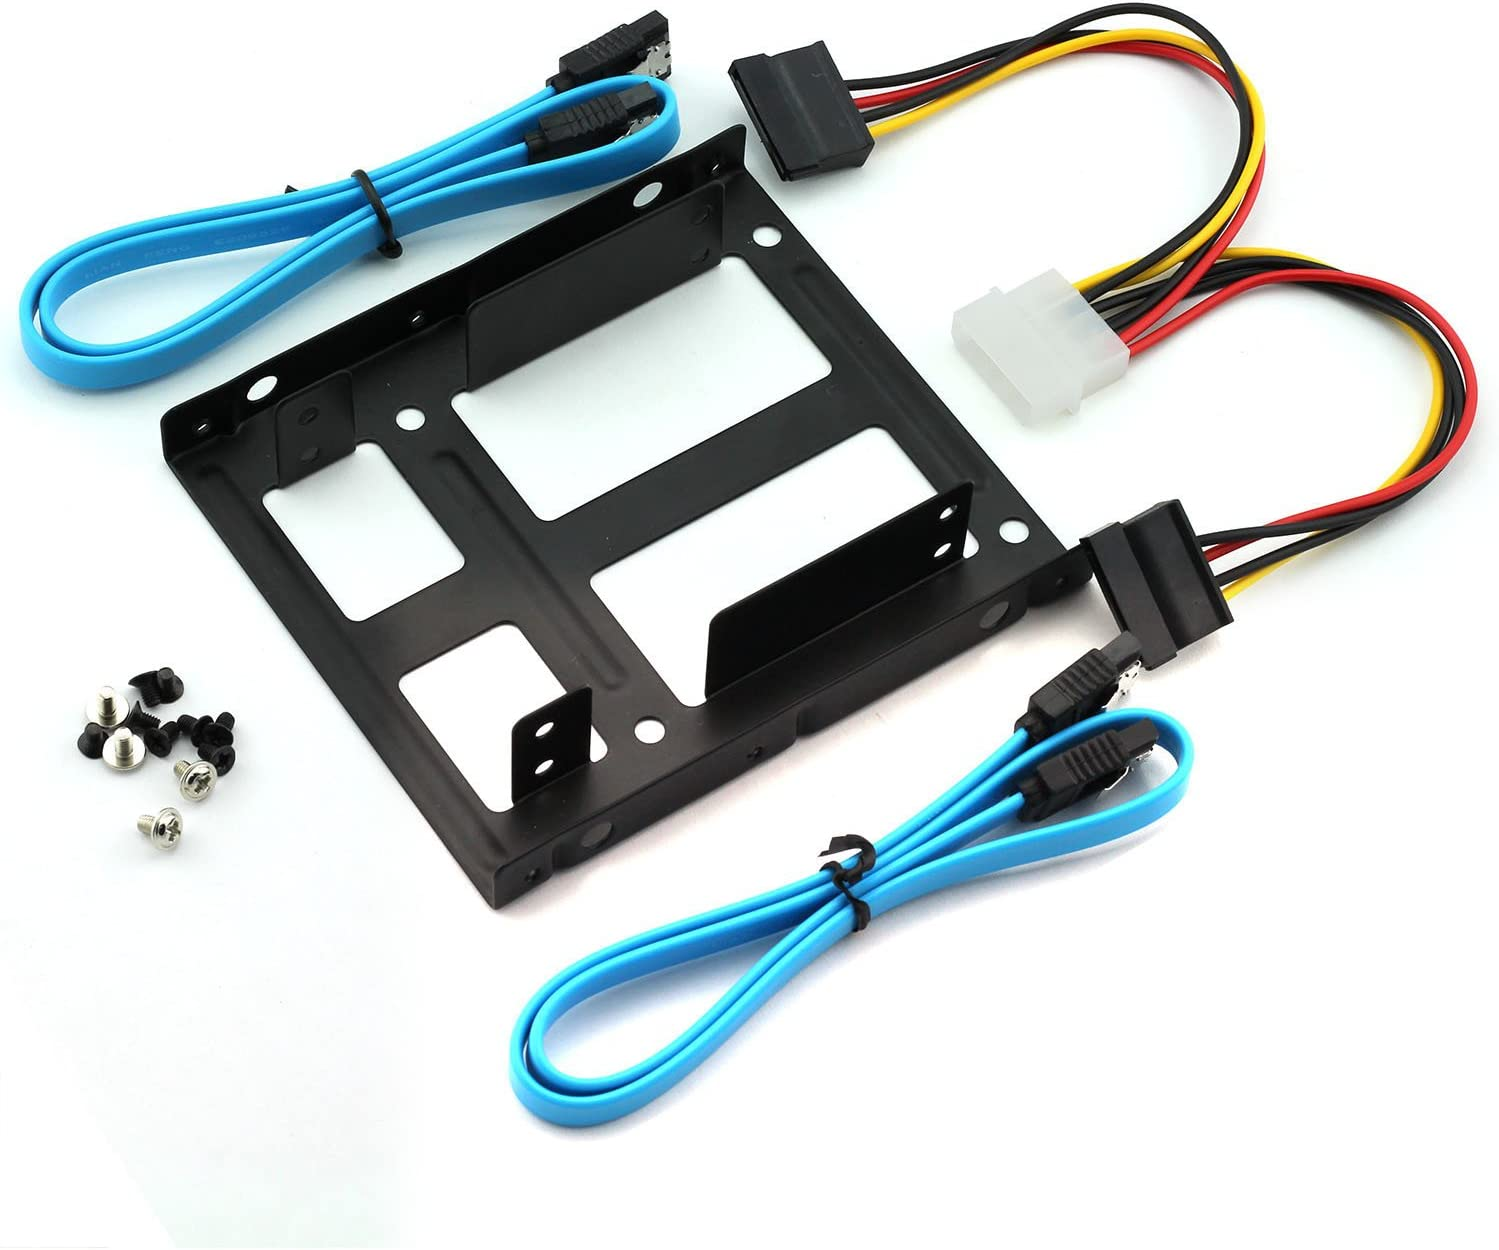 "Magic&shell 2-Bay 2.5"" to 3.5"" Drive Bay Adapter Kit Converter Tray HDD SSD Mounting Bracket + IDE 4P Male to 2 SATA 15 Pin Female Power Extension Cable Splitter + 2 x SATA 3.0 Cable"